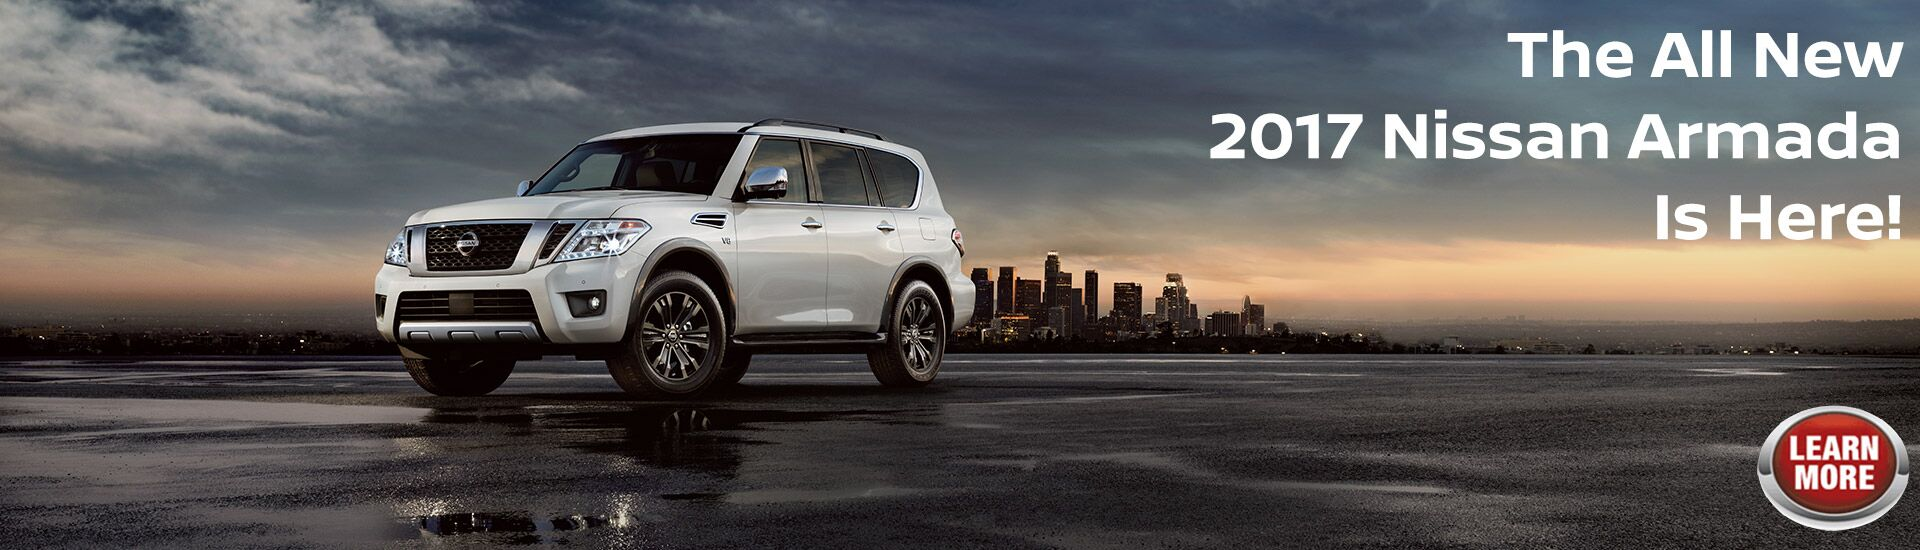 The 2017 Nissan Armada Is Here